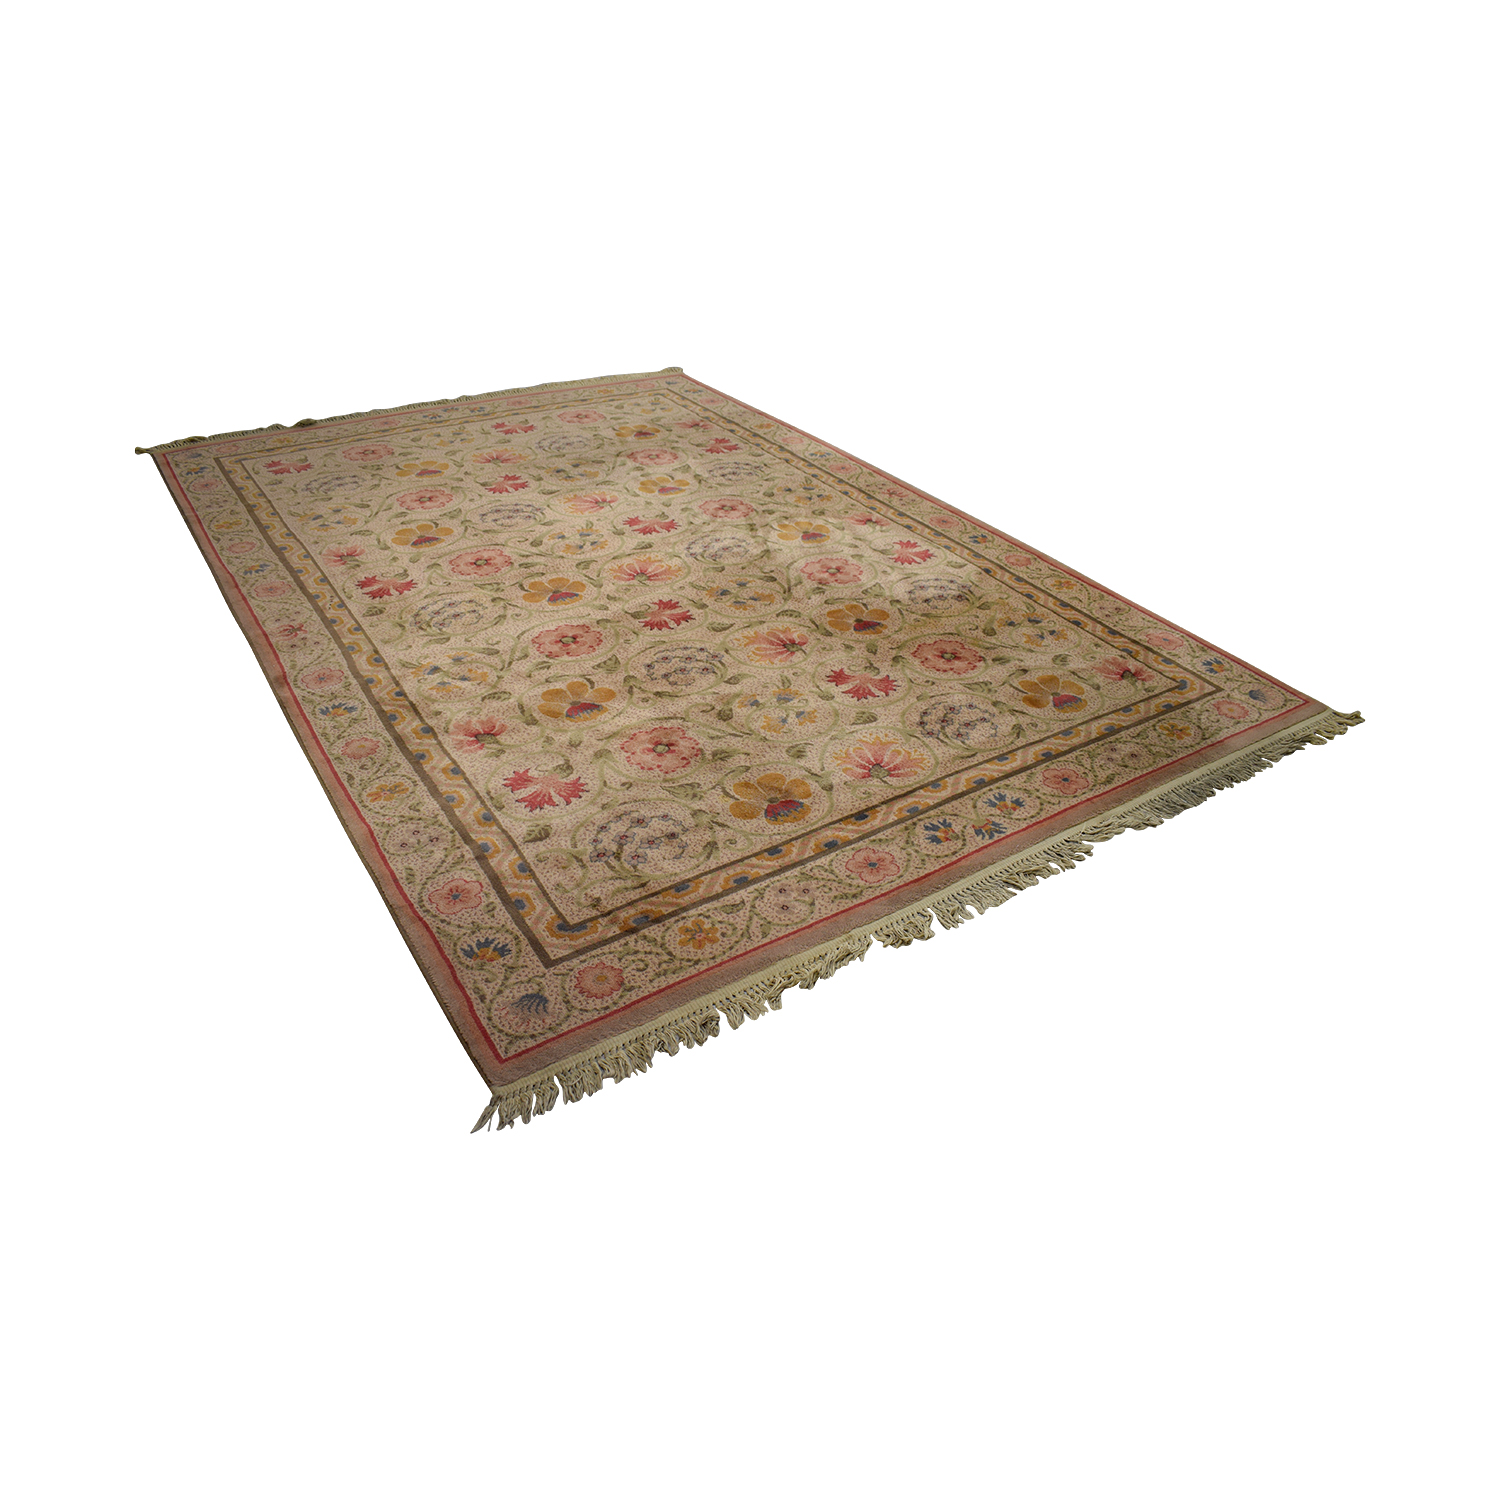 Karastan Karastan Oriental Beige and Red Floral Rug for sale